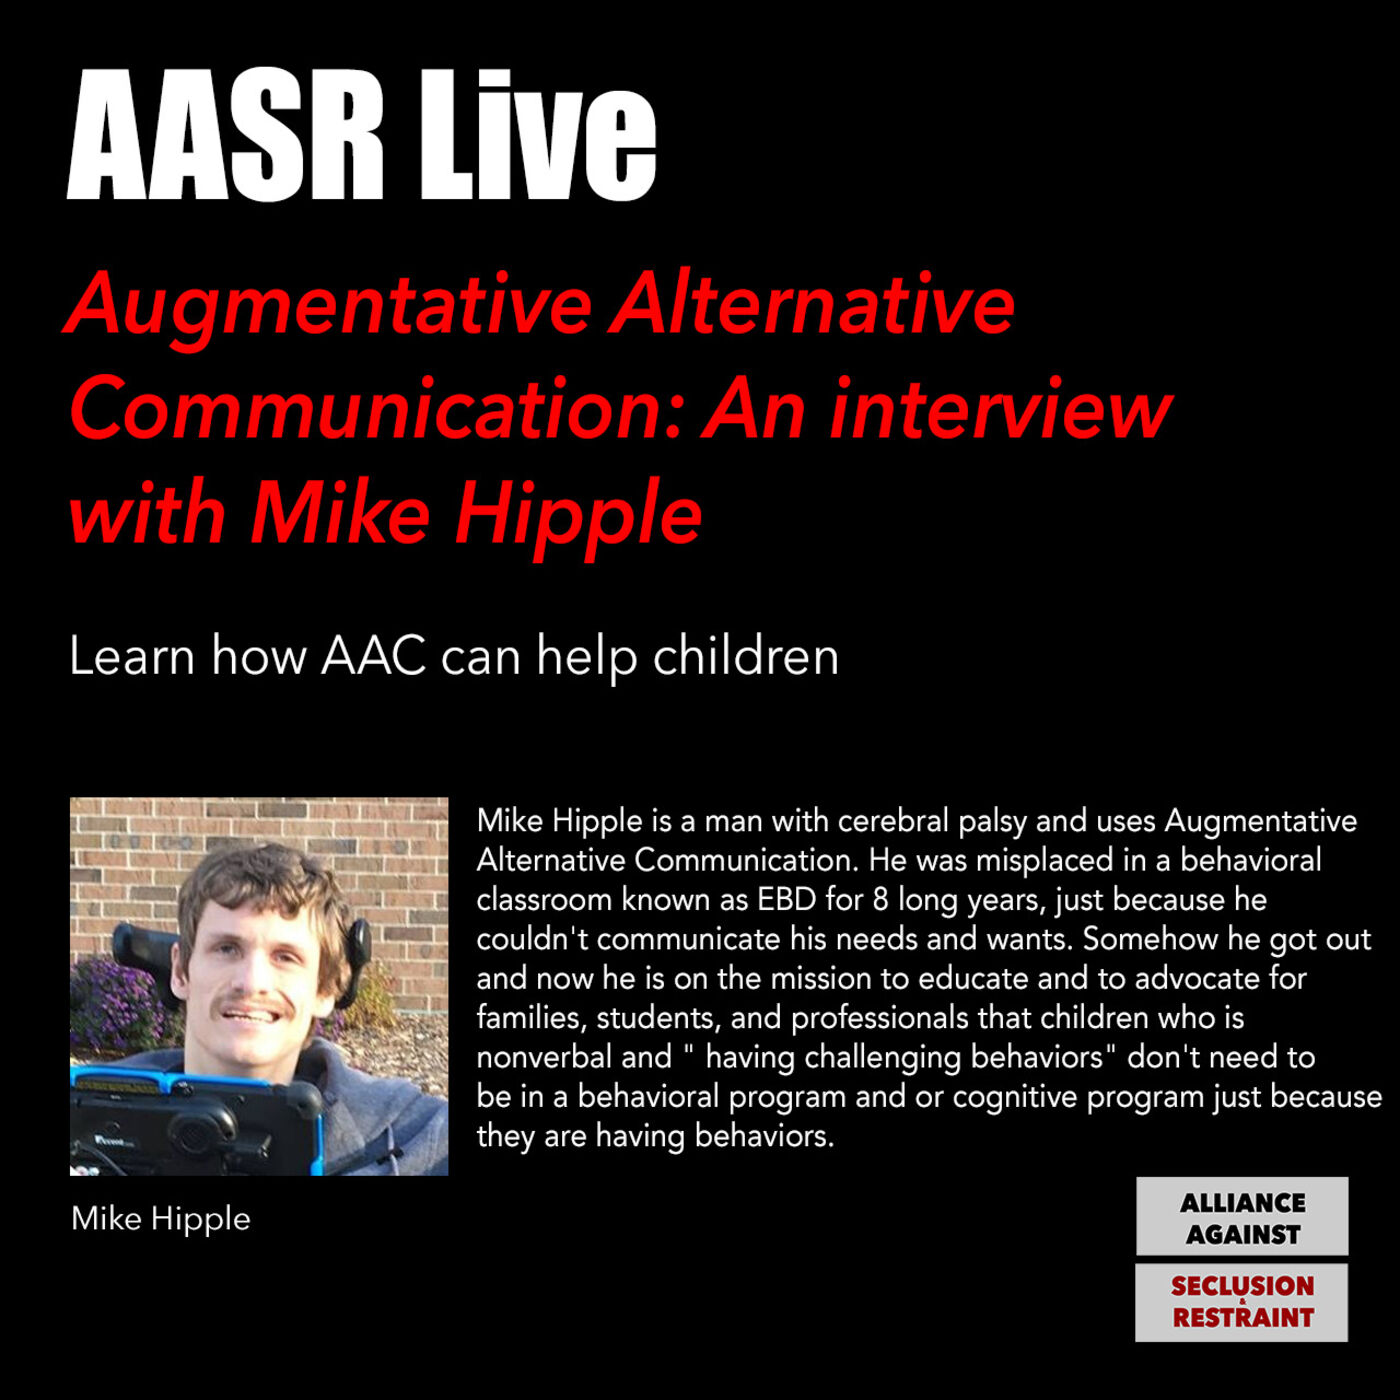 Augmentative Alternative Communication (AAC): An interview with Mike Hipple